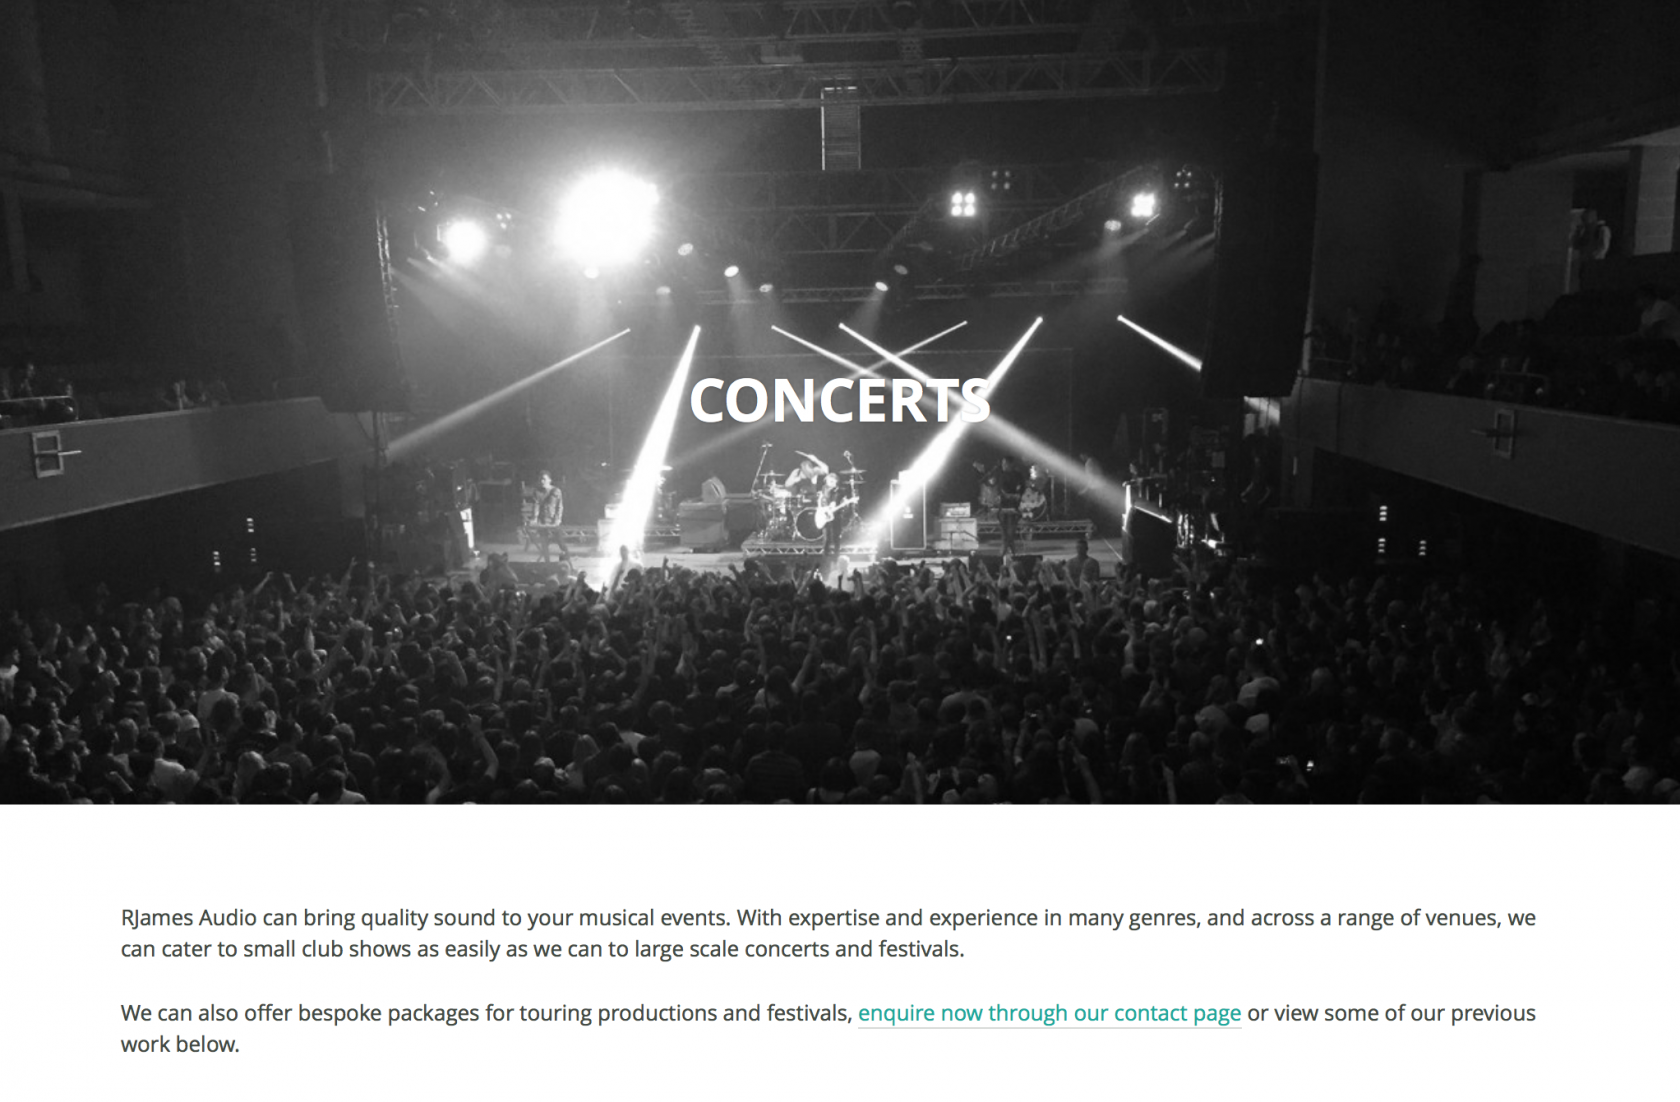 Wordpress Concerts page RJames Audio